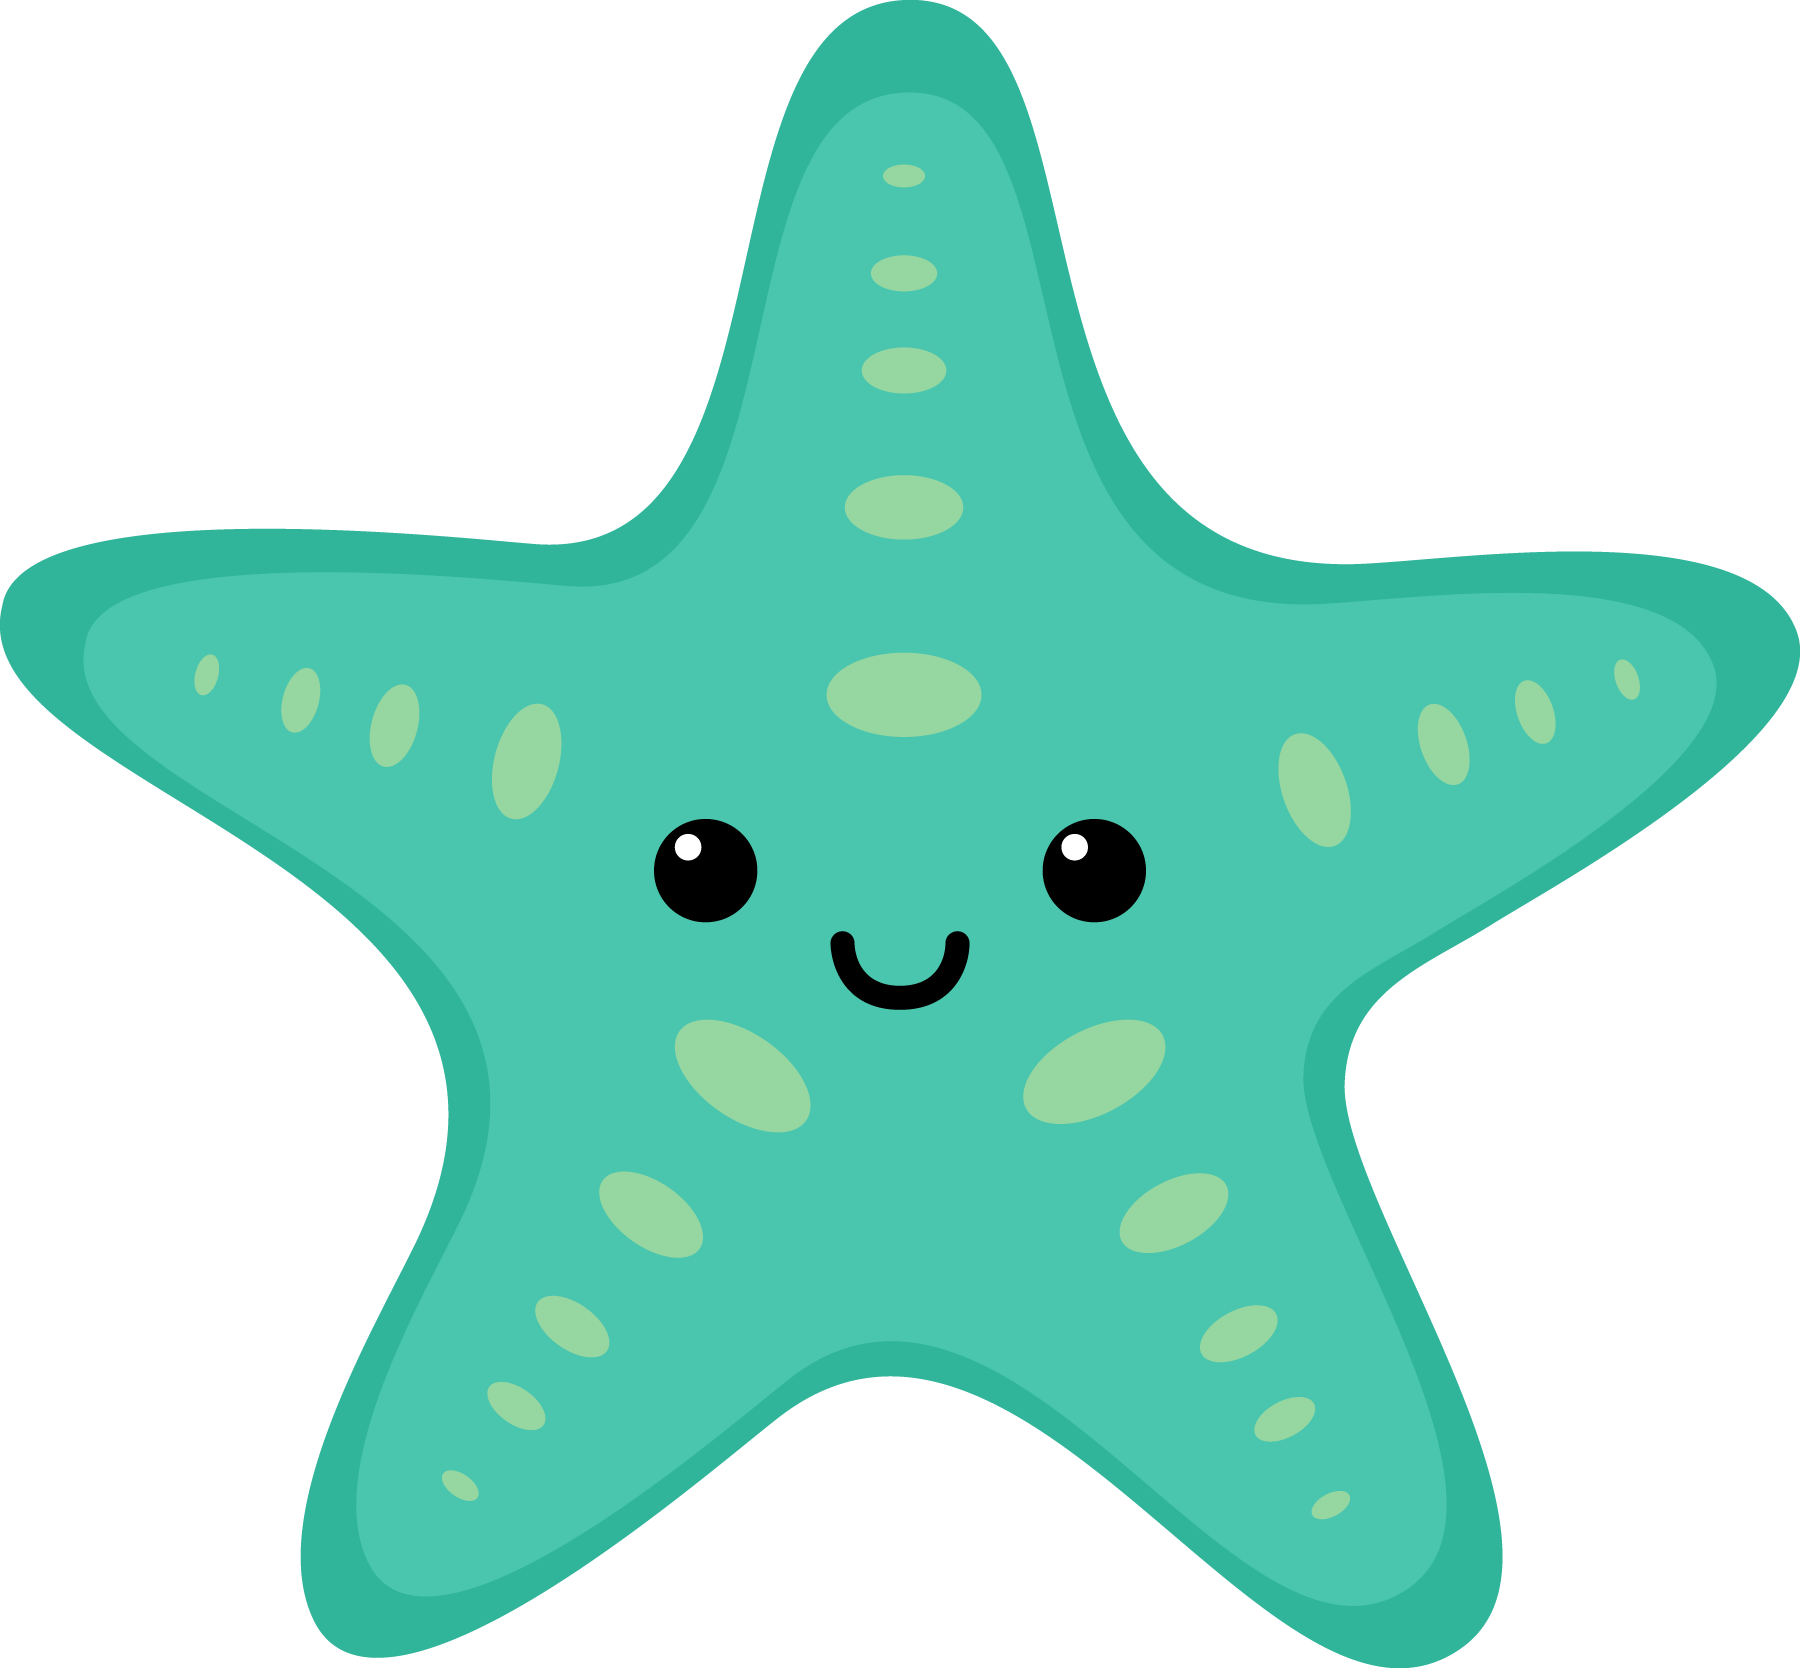 Starfish clipart beach gear. Cute pencil and in